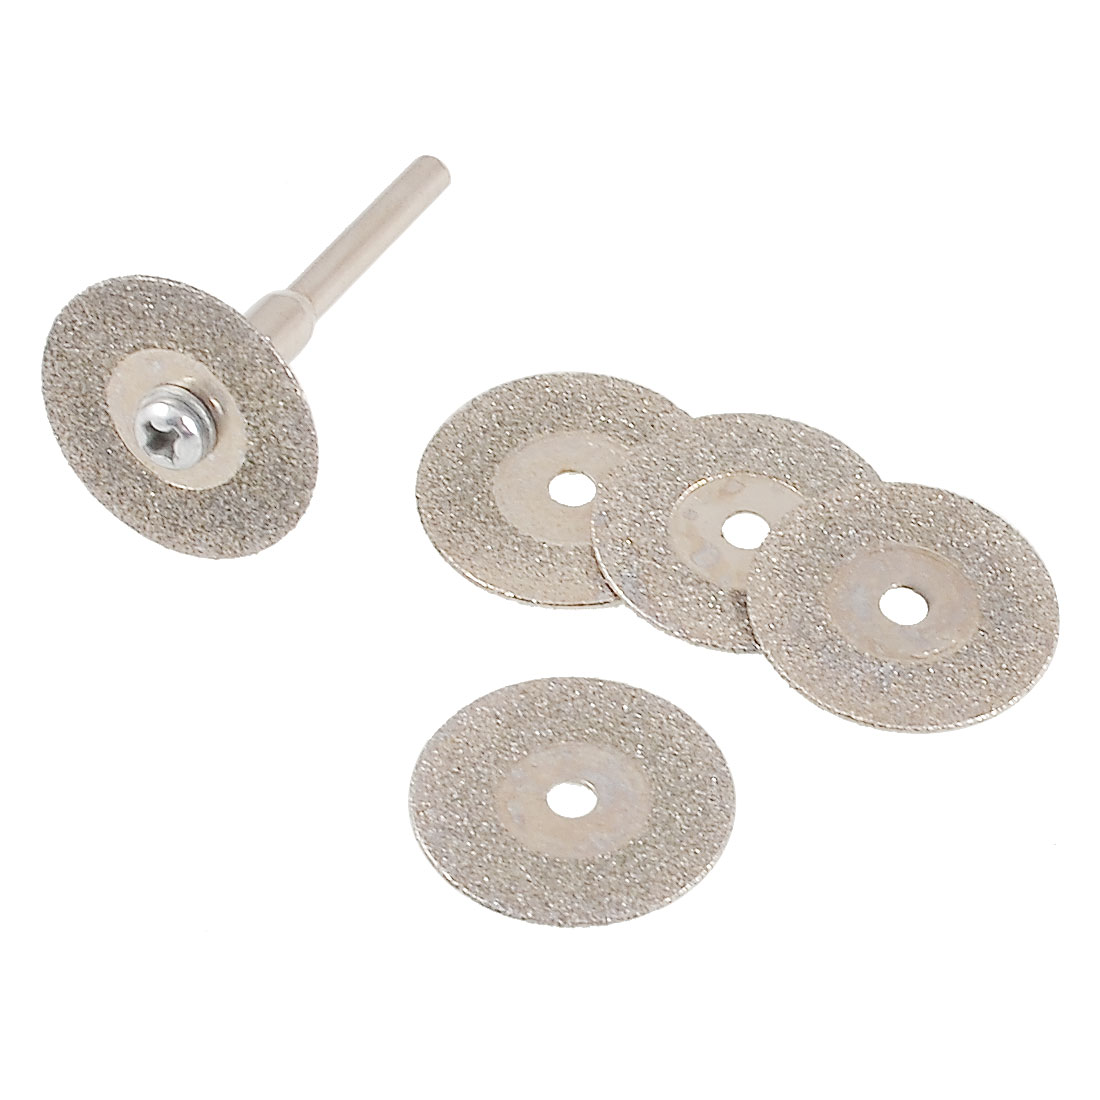 20mm Dia Mini Electric Grinder Abrasive Cutter Wheel 6 Pcs w Connector